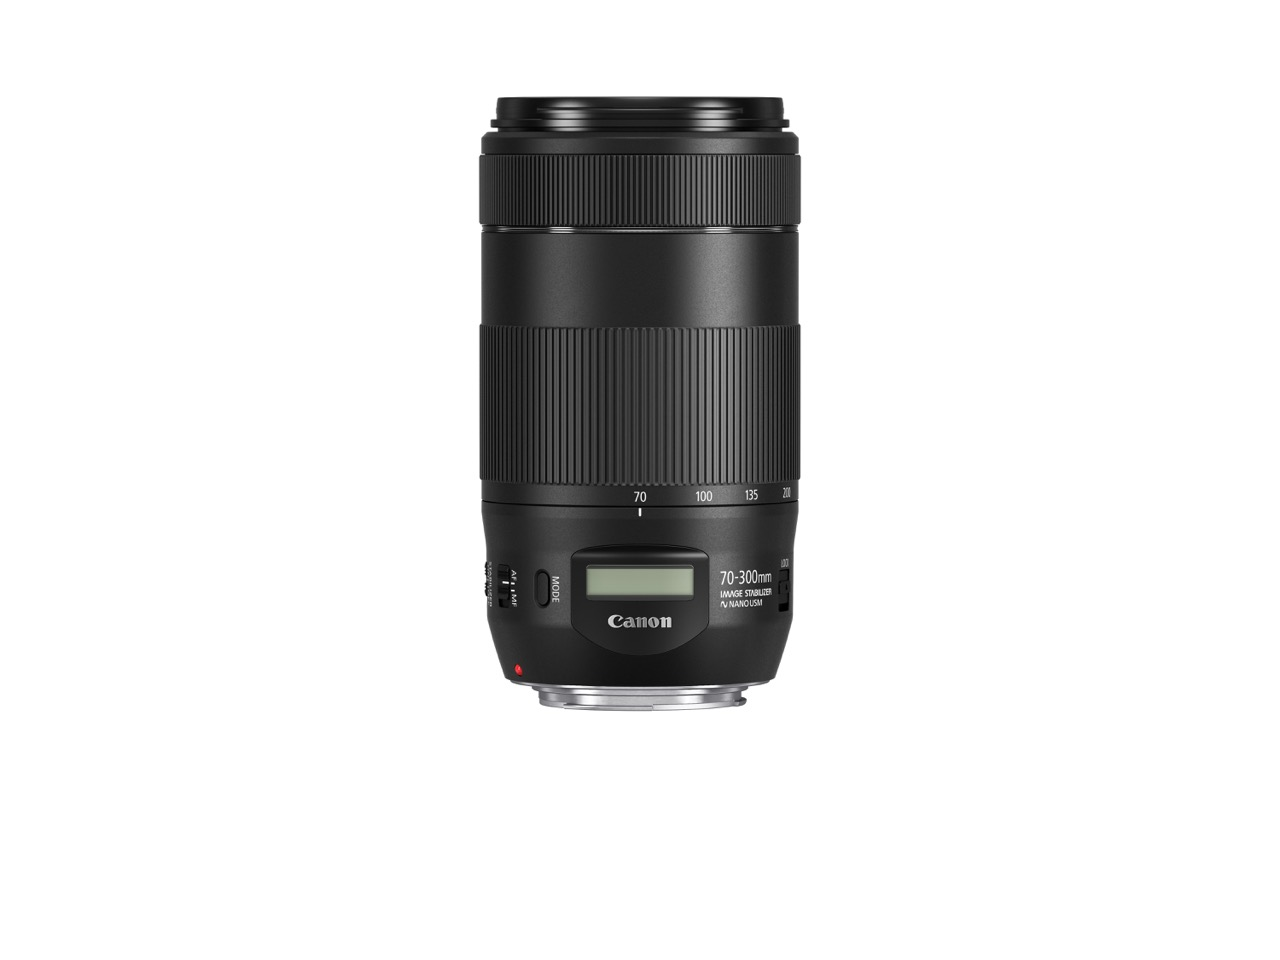 ef70-300mm-f4-5-6-is-ii-usm-image-2